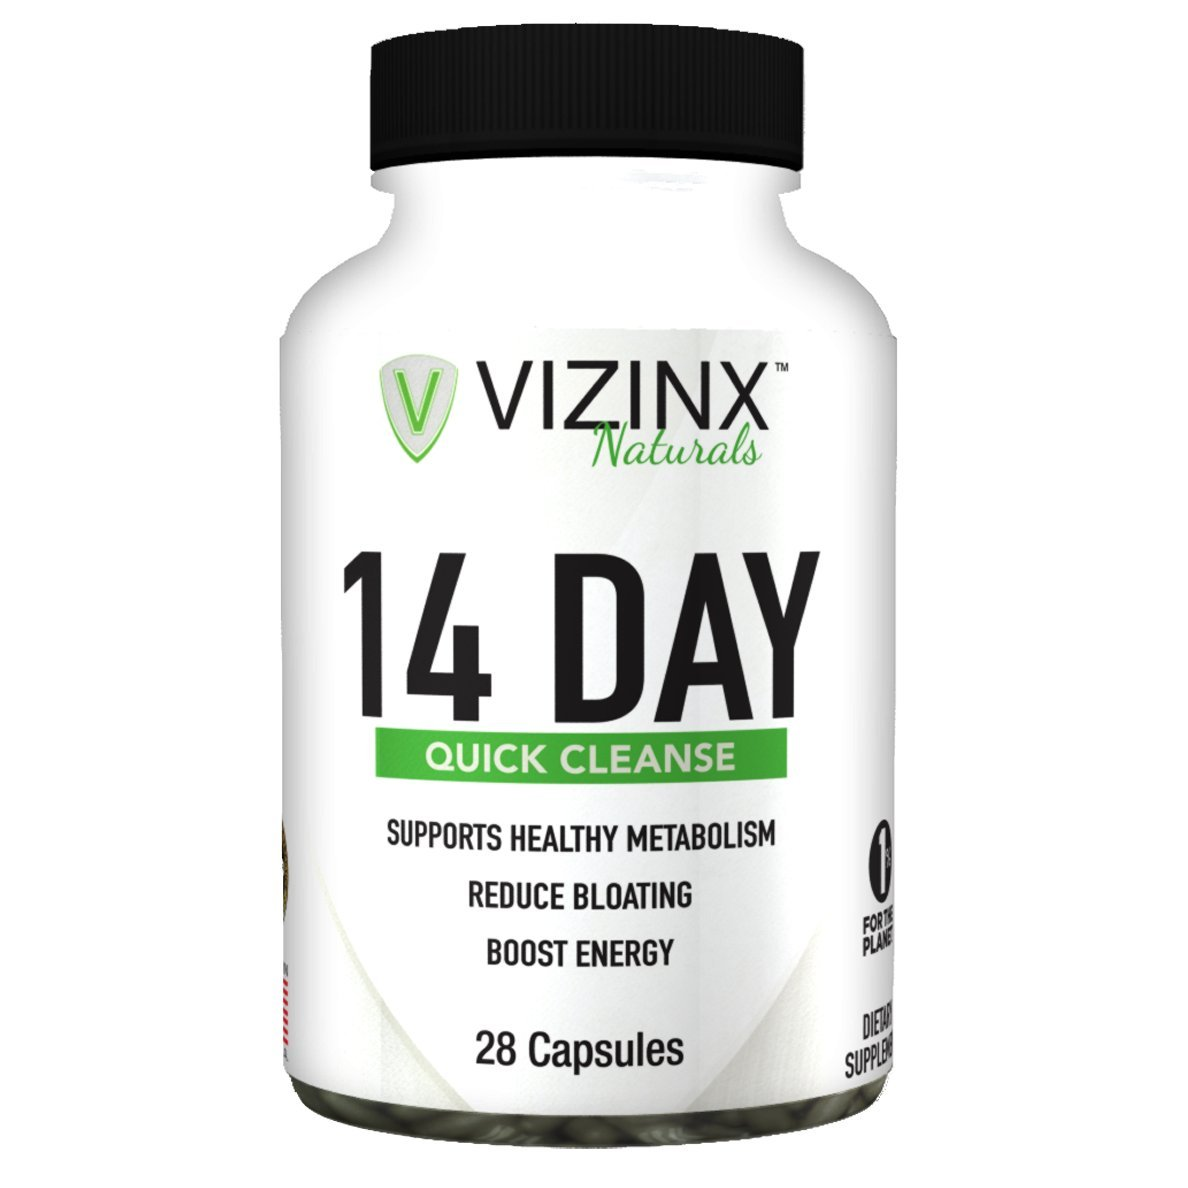 VIZINX 14 Day Quick Cleanse - Supports The Elimination of Toxins & Wastes While Restoring Healthy Bacteria levels. Improves Energy and Digestive Health, Reduces Belly Bloat, Healthy Weight Loss